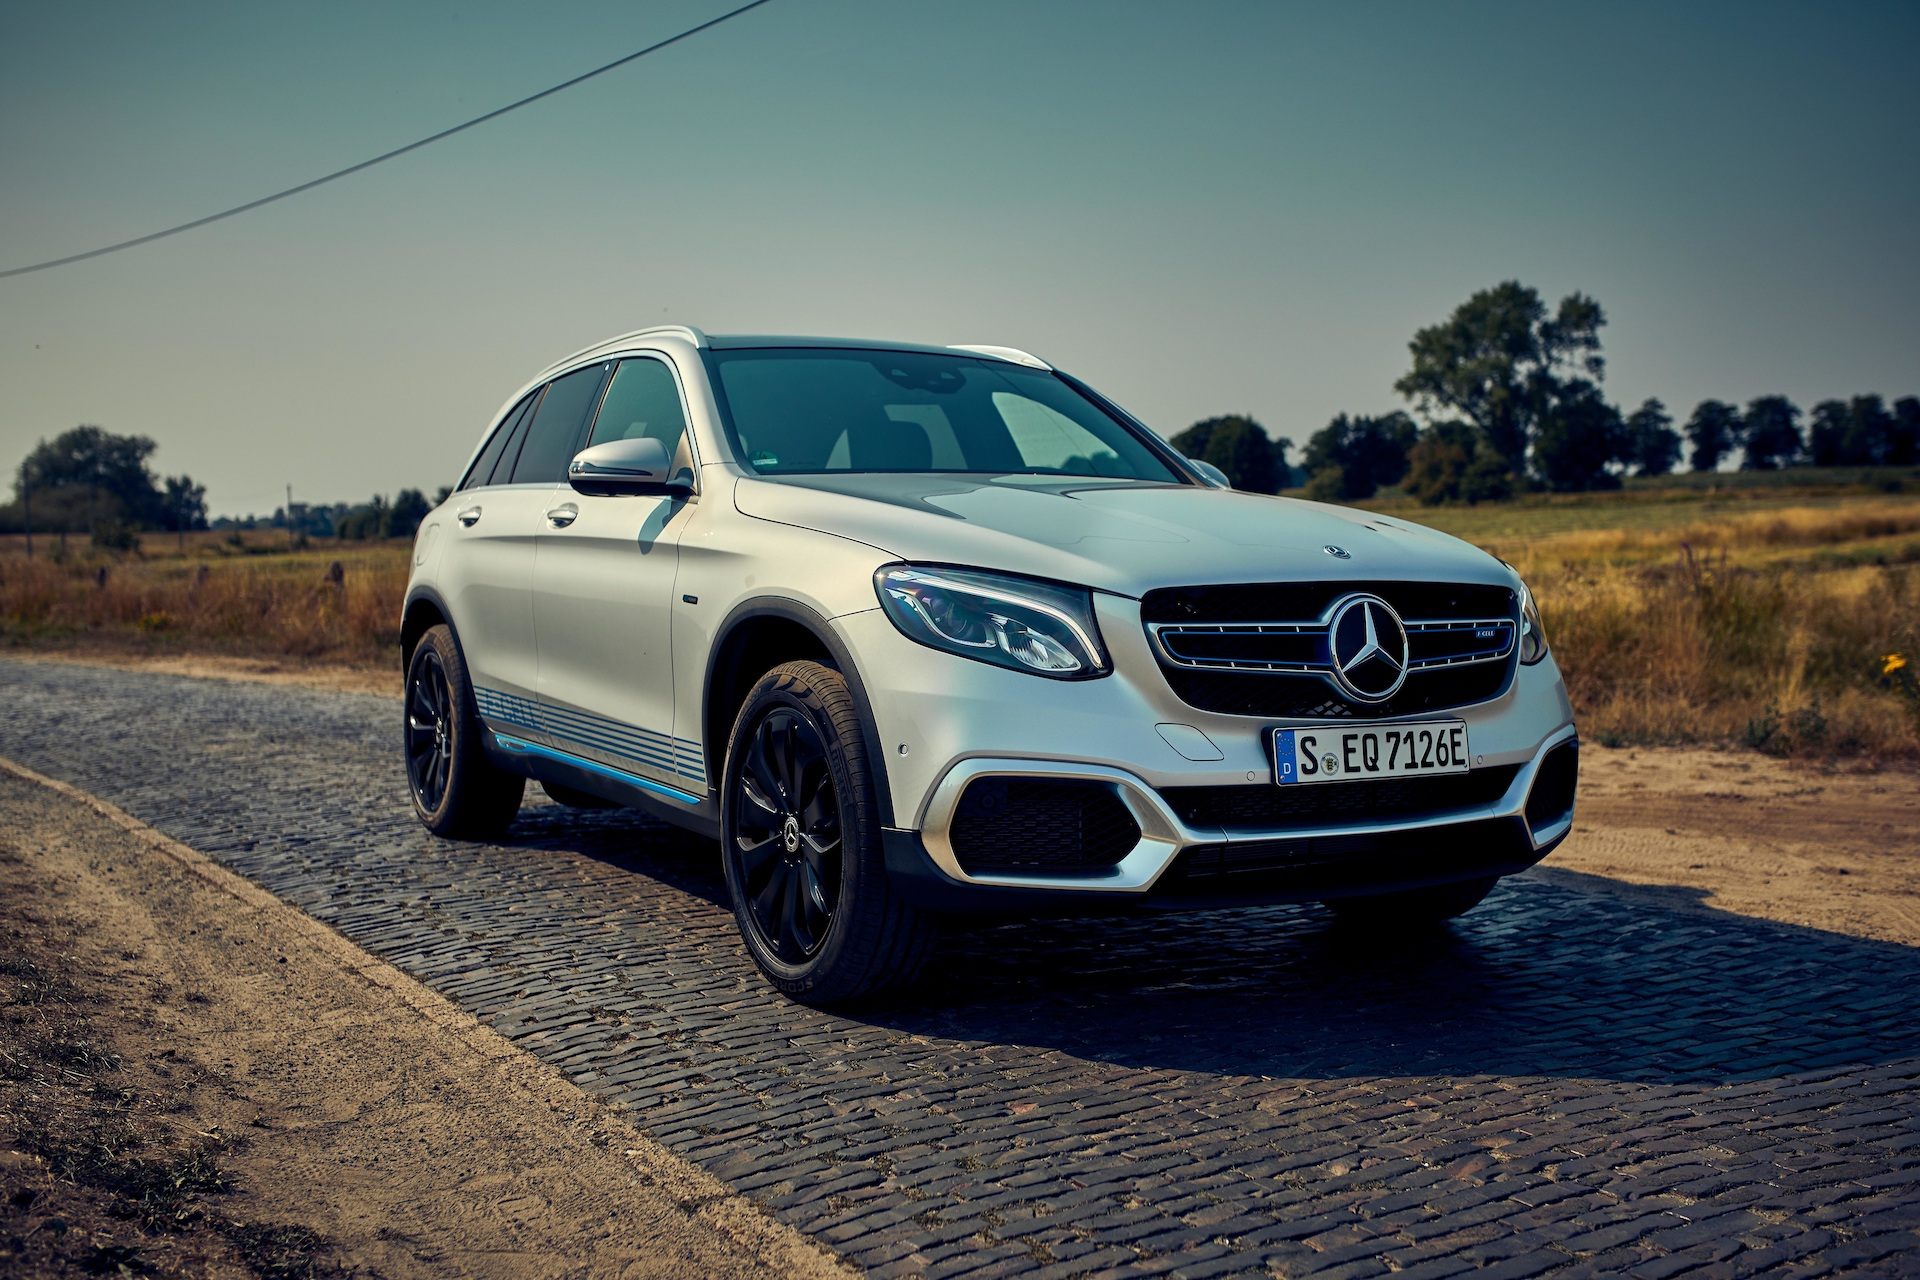 Mercedes-Benz F-Cell SUV axed, hydrogen fuel-cell development halted for cars